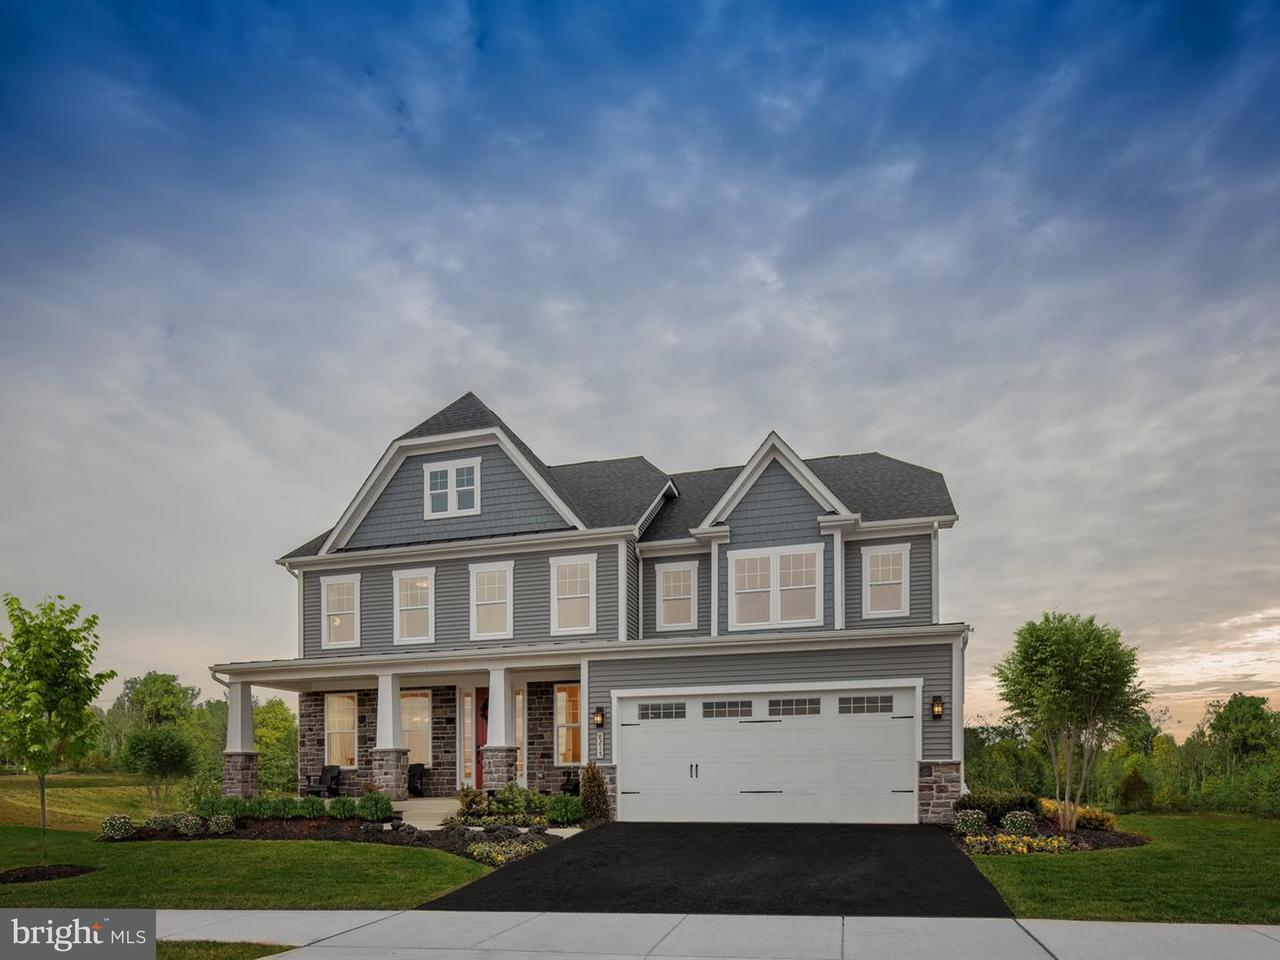 Single Family Home for Sale at Dahlia Manor Place Dahlia Manor Place Aldie, Virginia 20105 United States